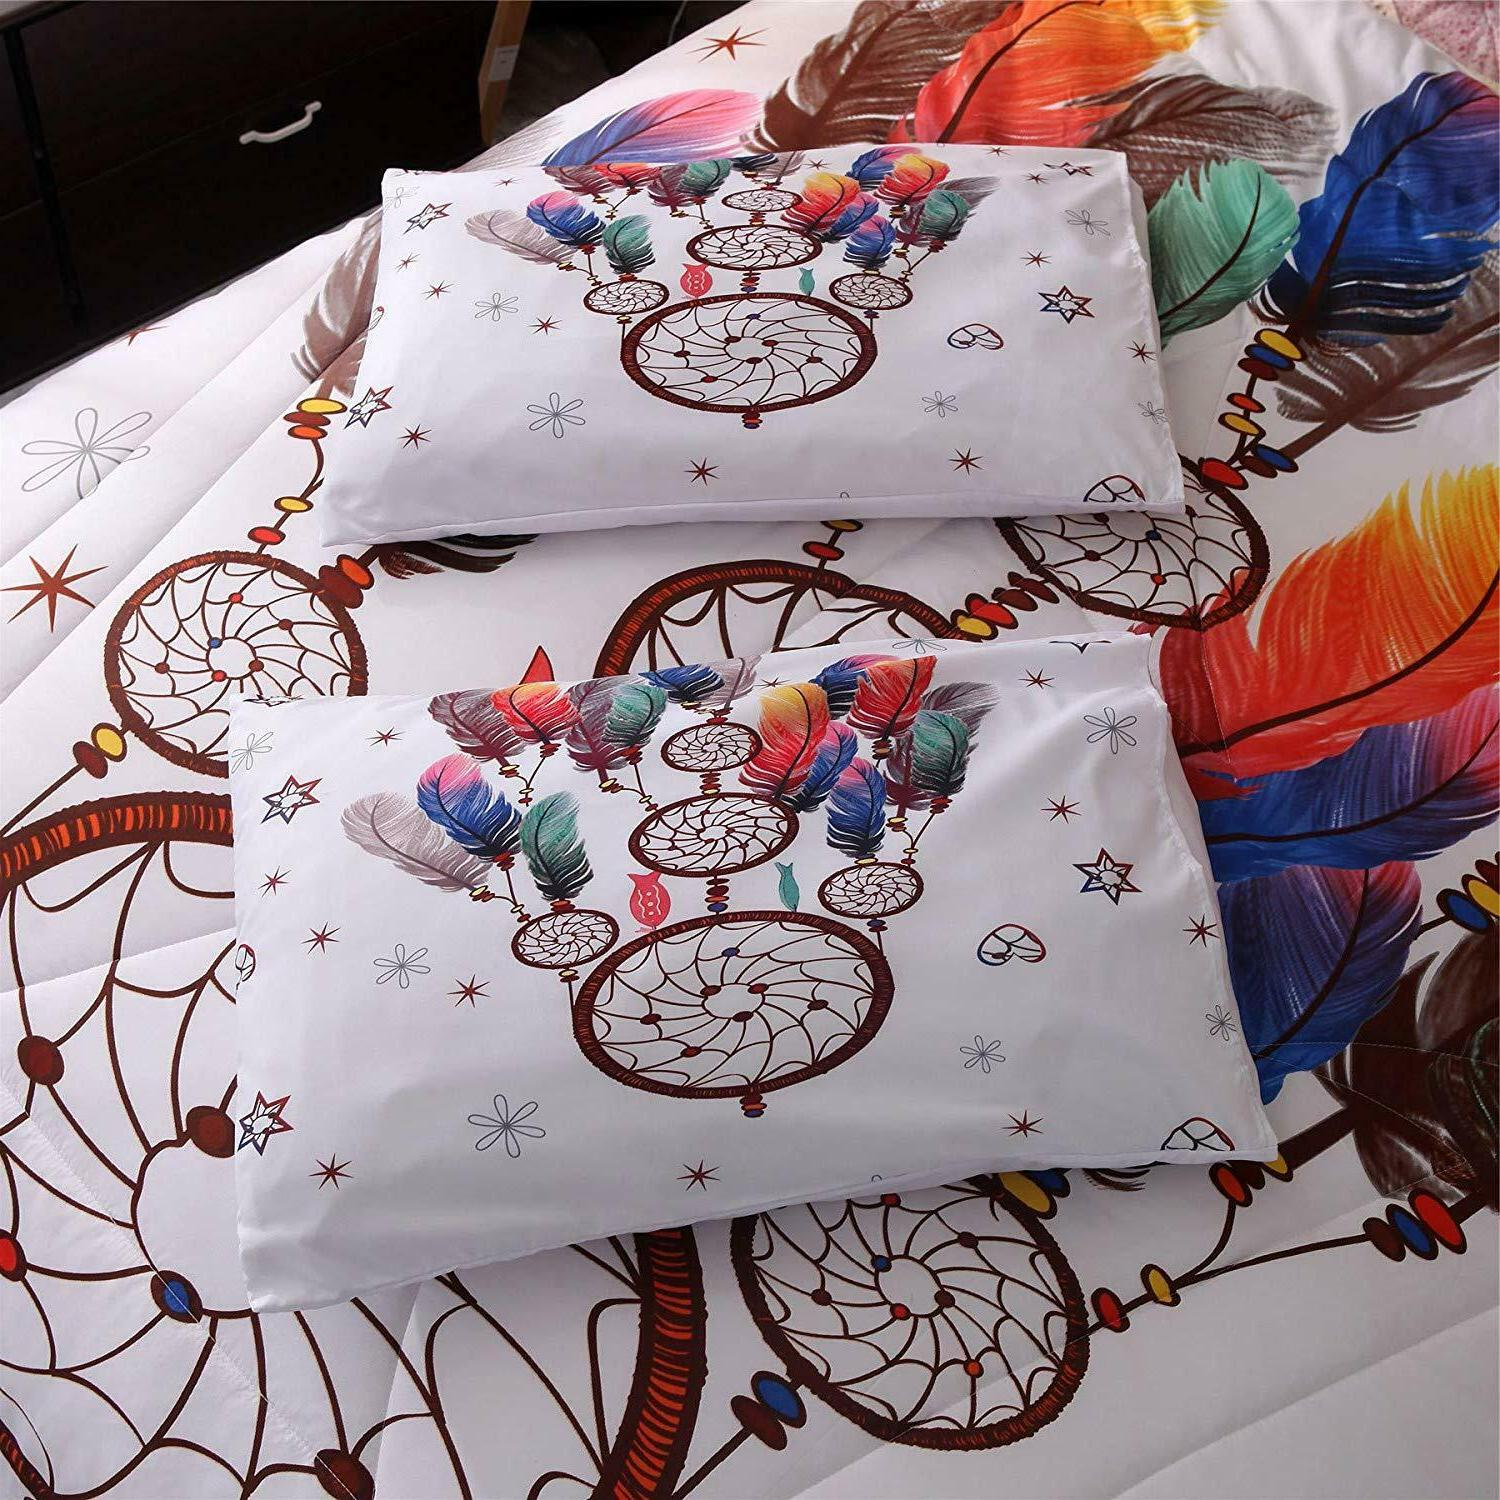 Set Boho Quilt Queen Bedding